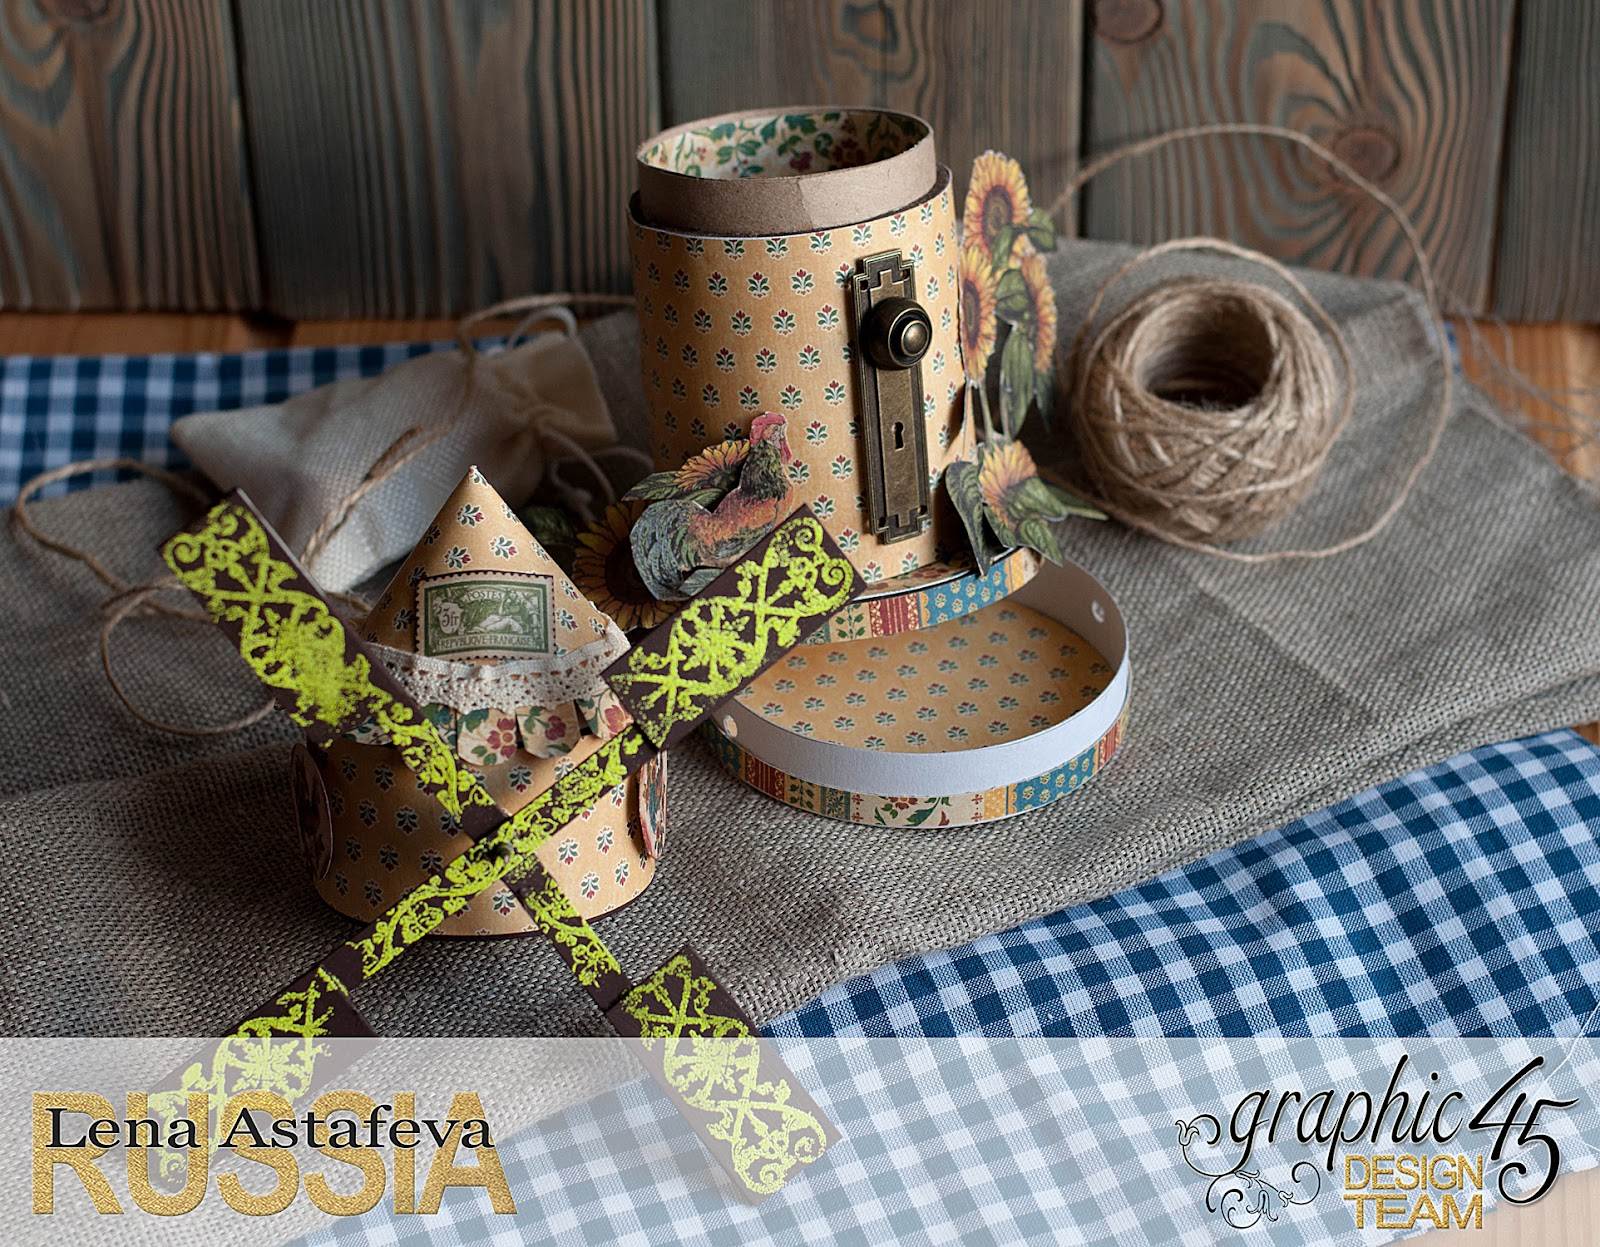 Mill-French Country-by tutorial Lena Astafeva-product Graphic 45-20.jpg